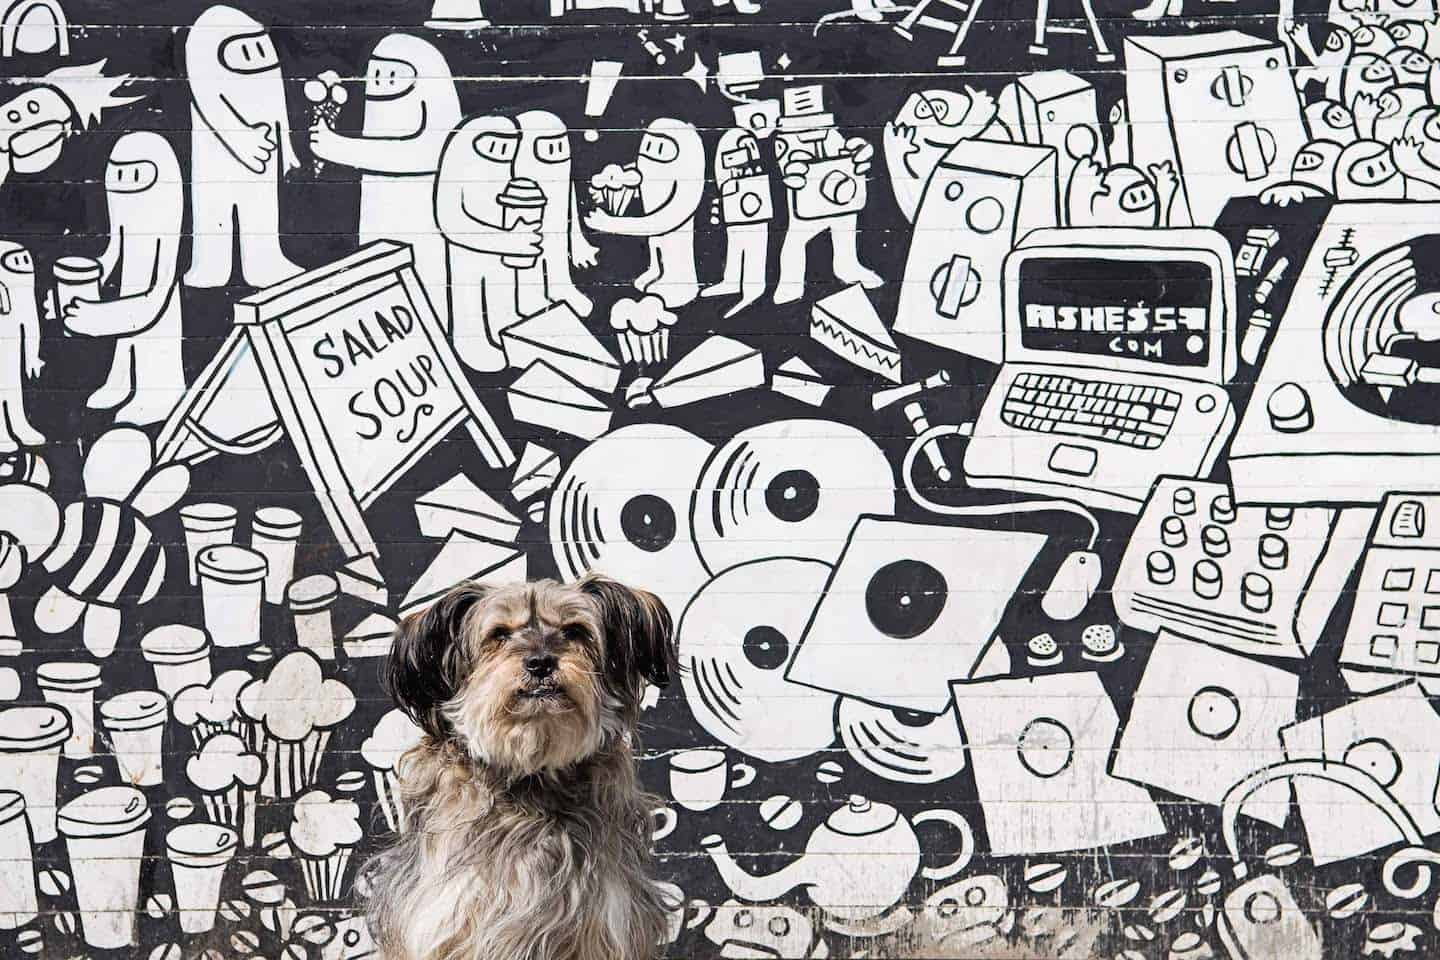 London Dog Events On This Week 26 - 31 October - Shoredtich Street Art and Dogs